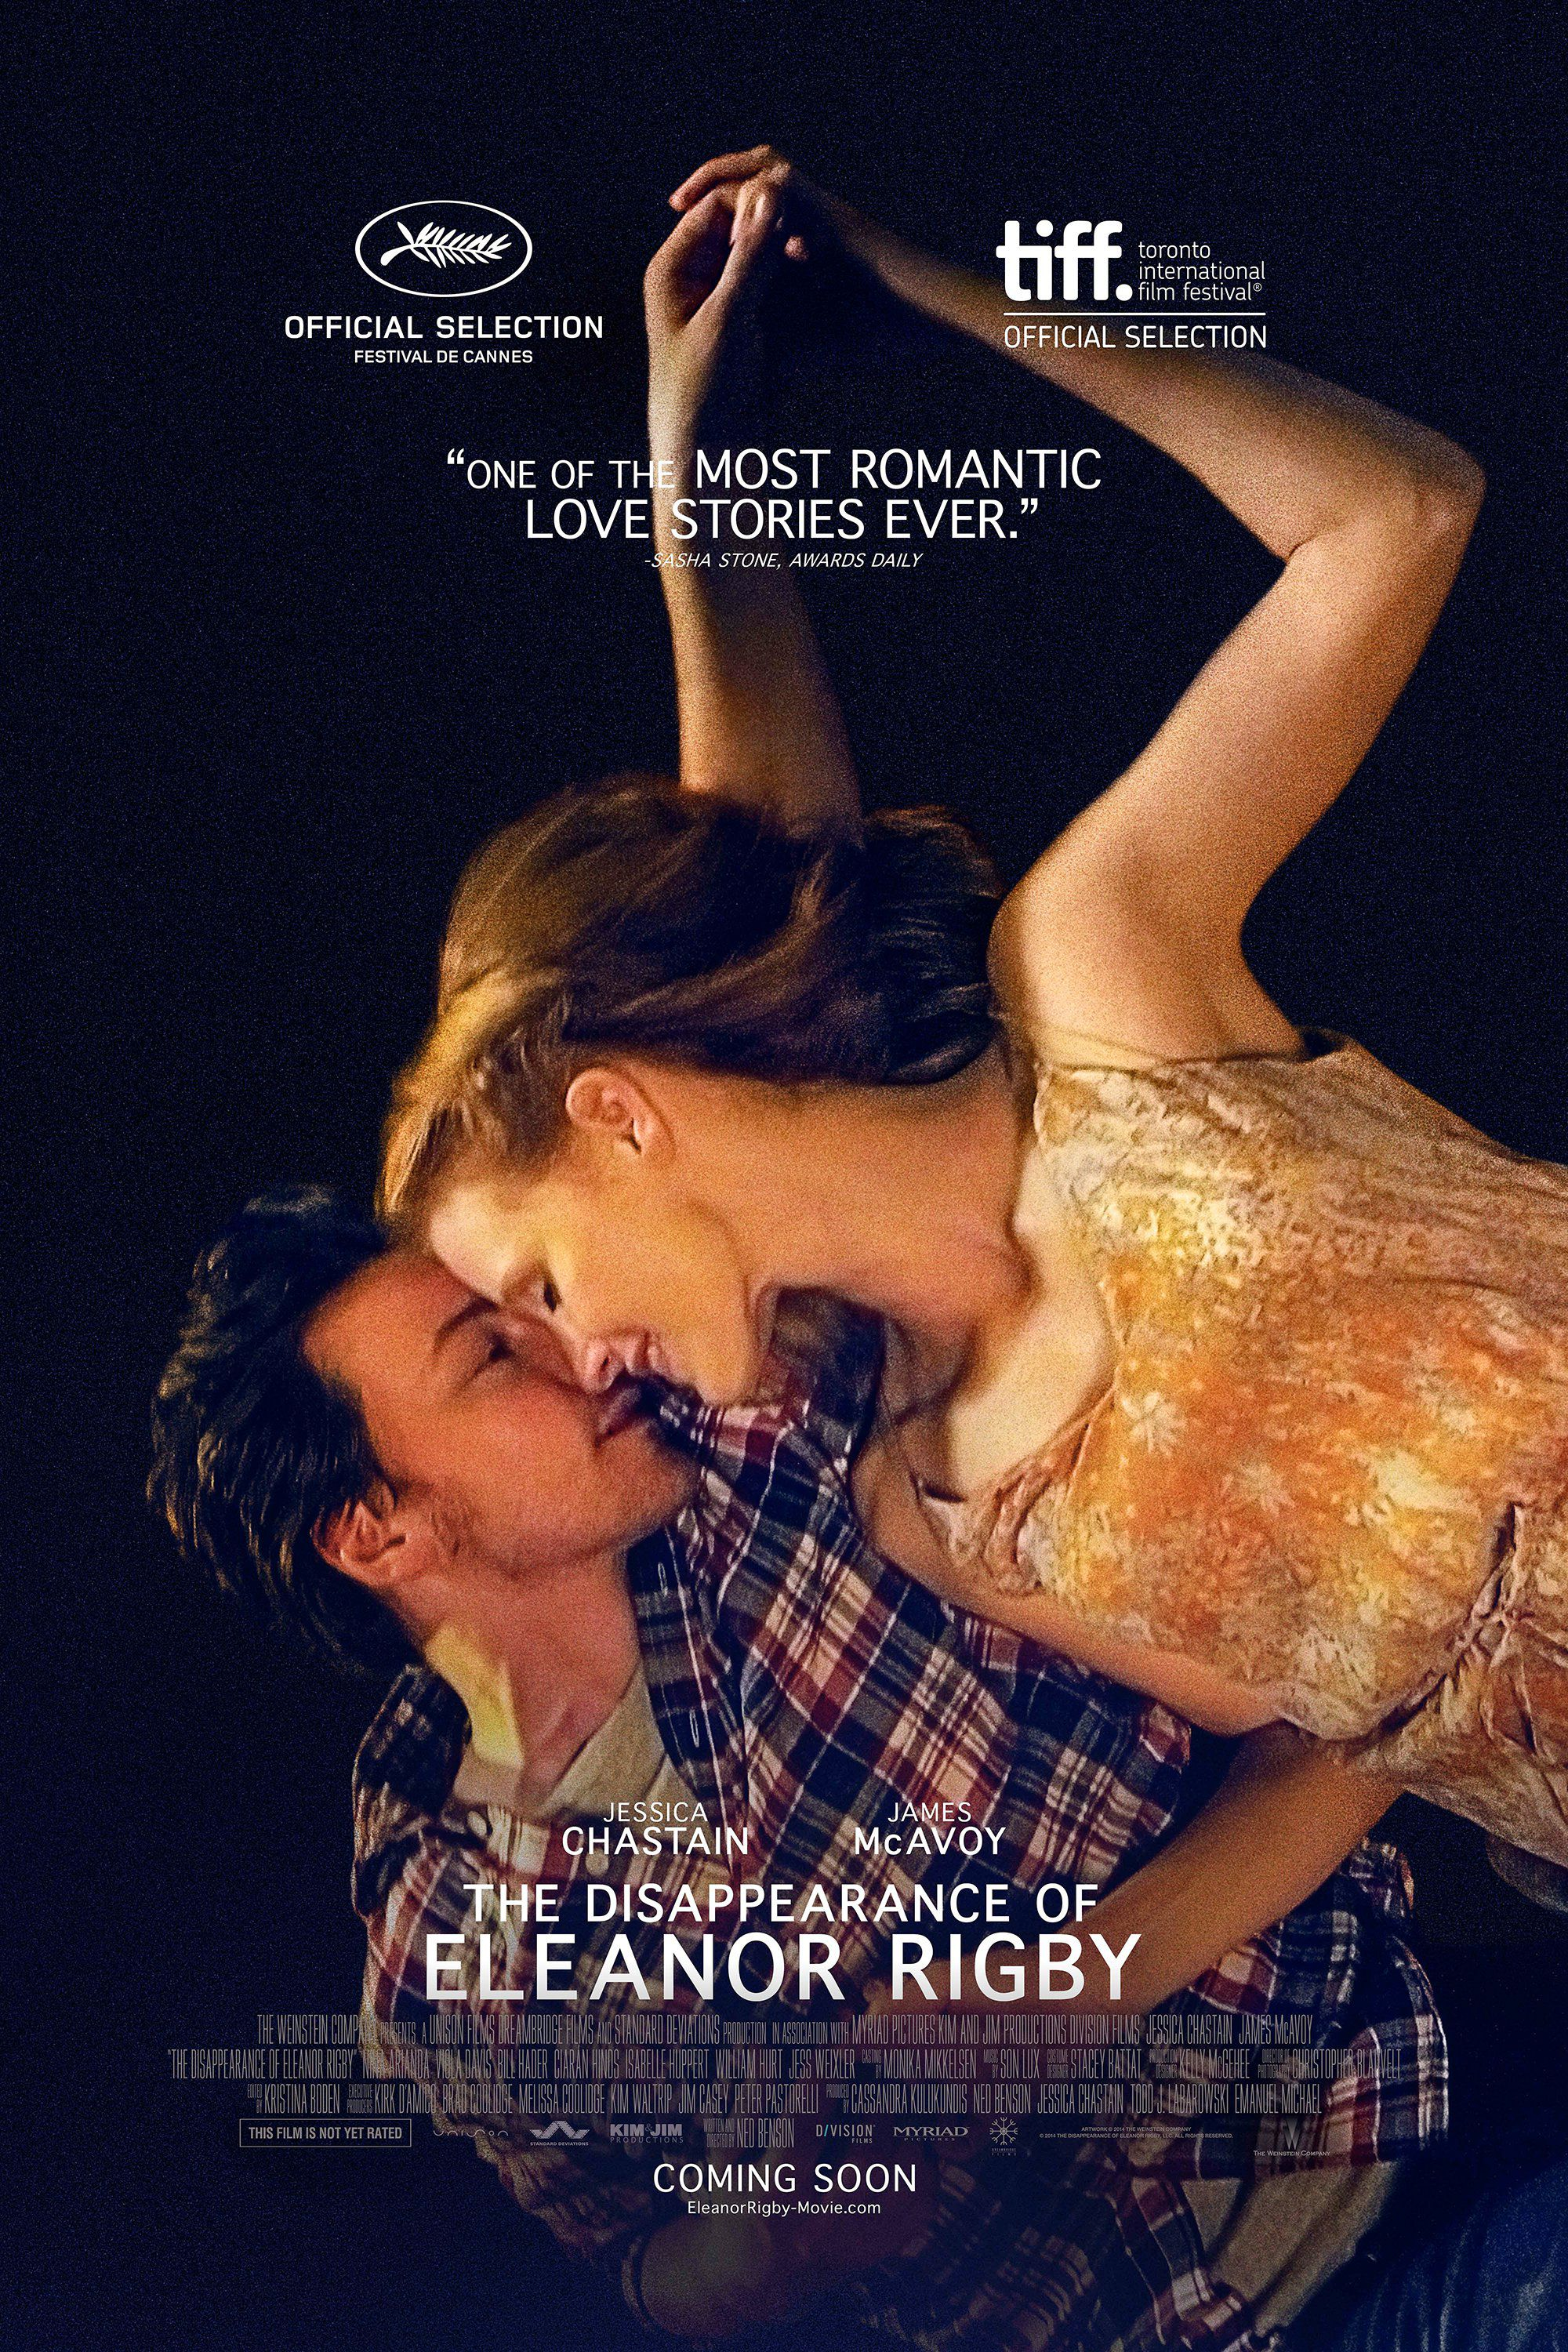 The Disappearance of Eleanor Rigby - Film (2014)